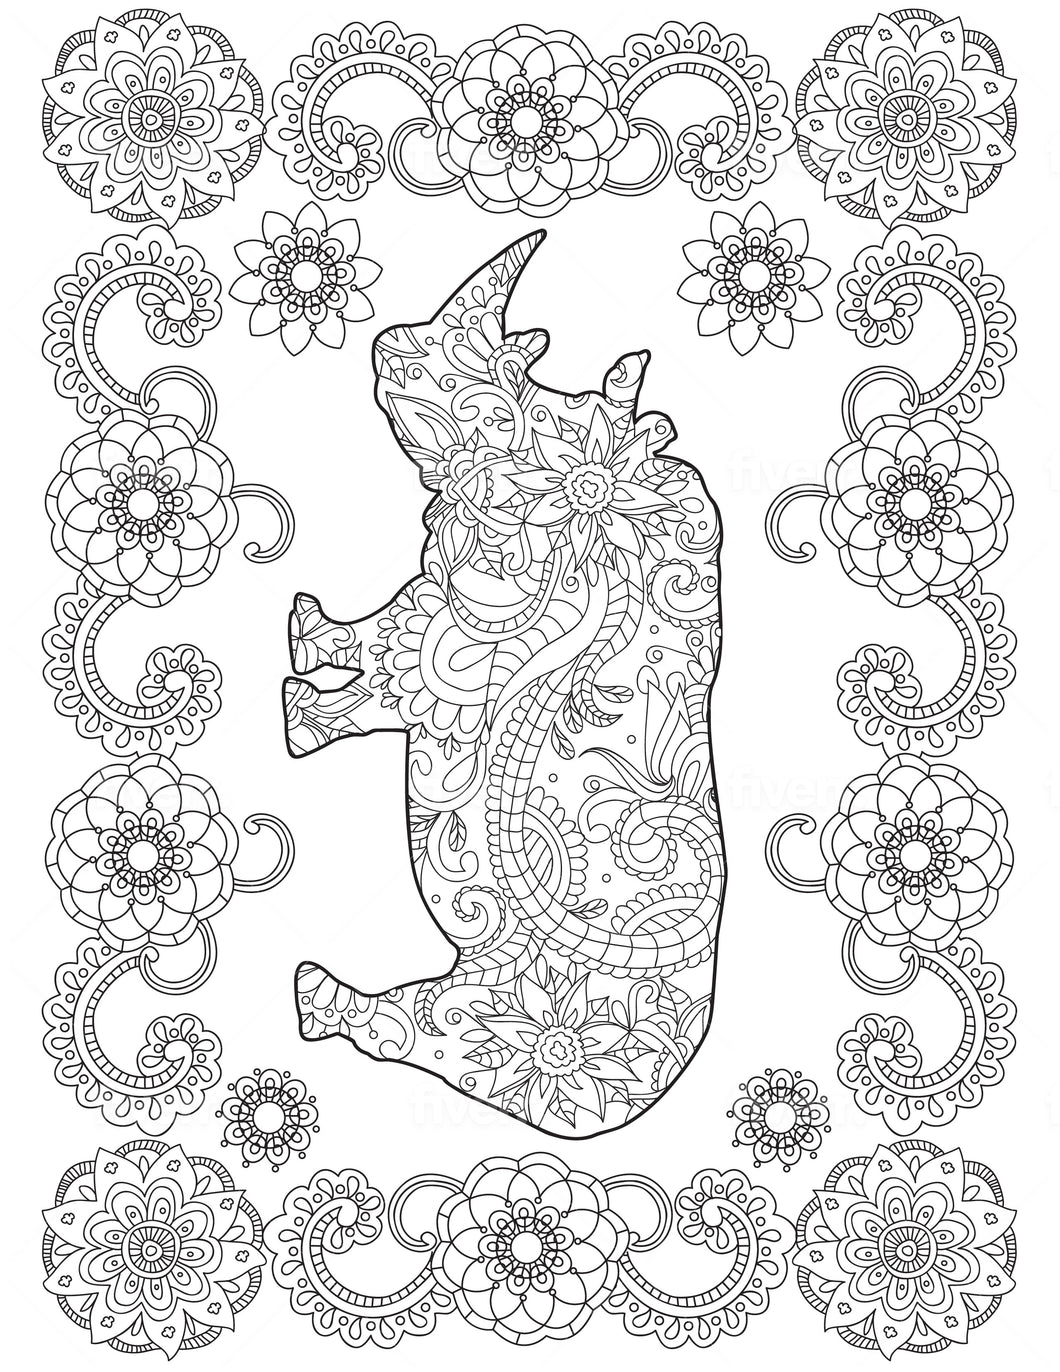 Rhino Coloring Sheet